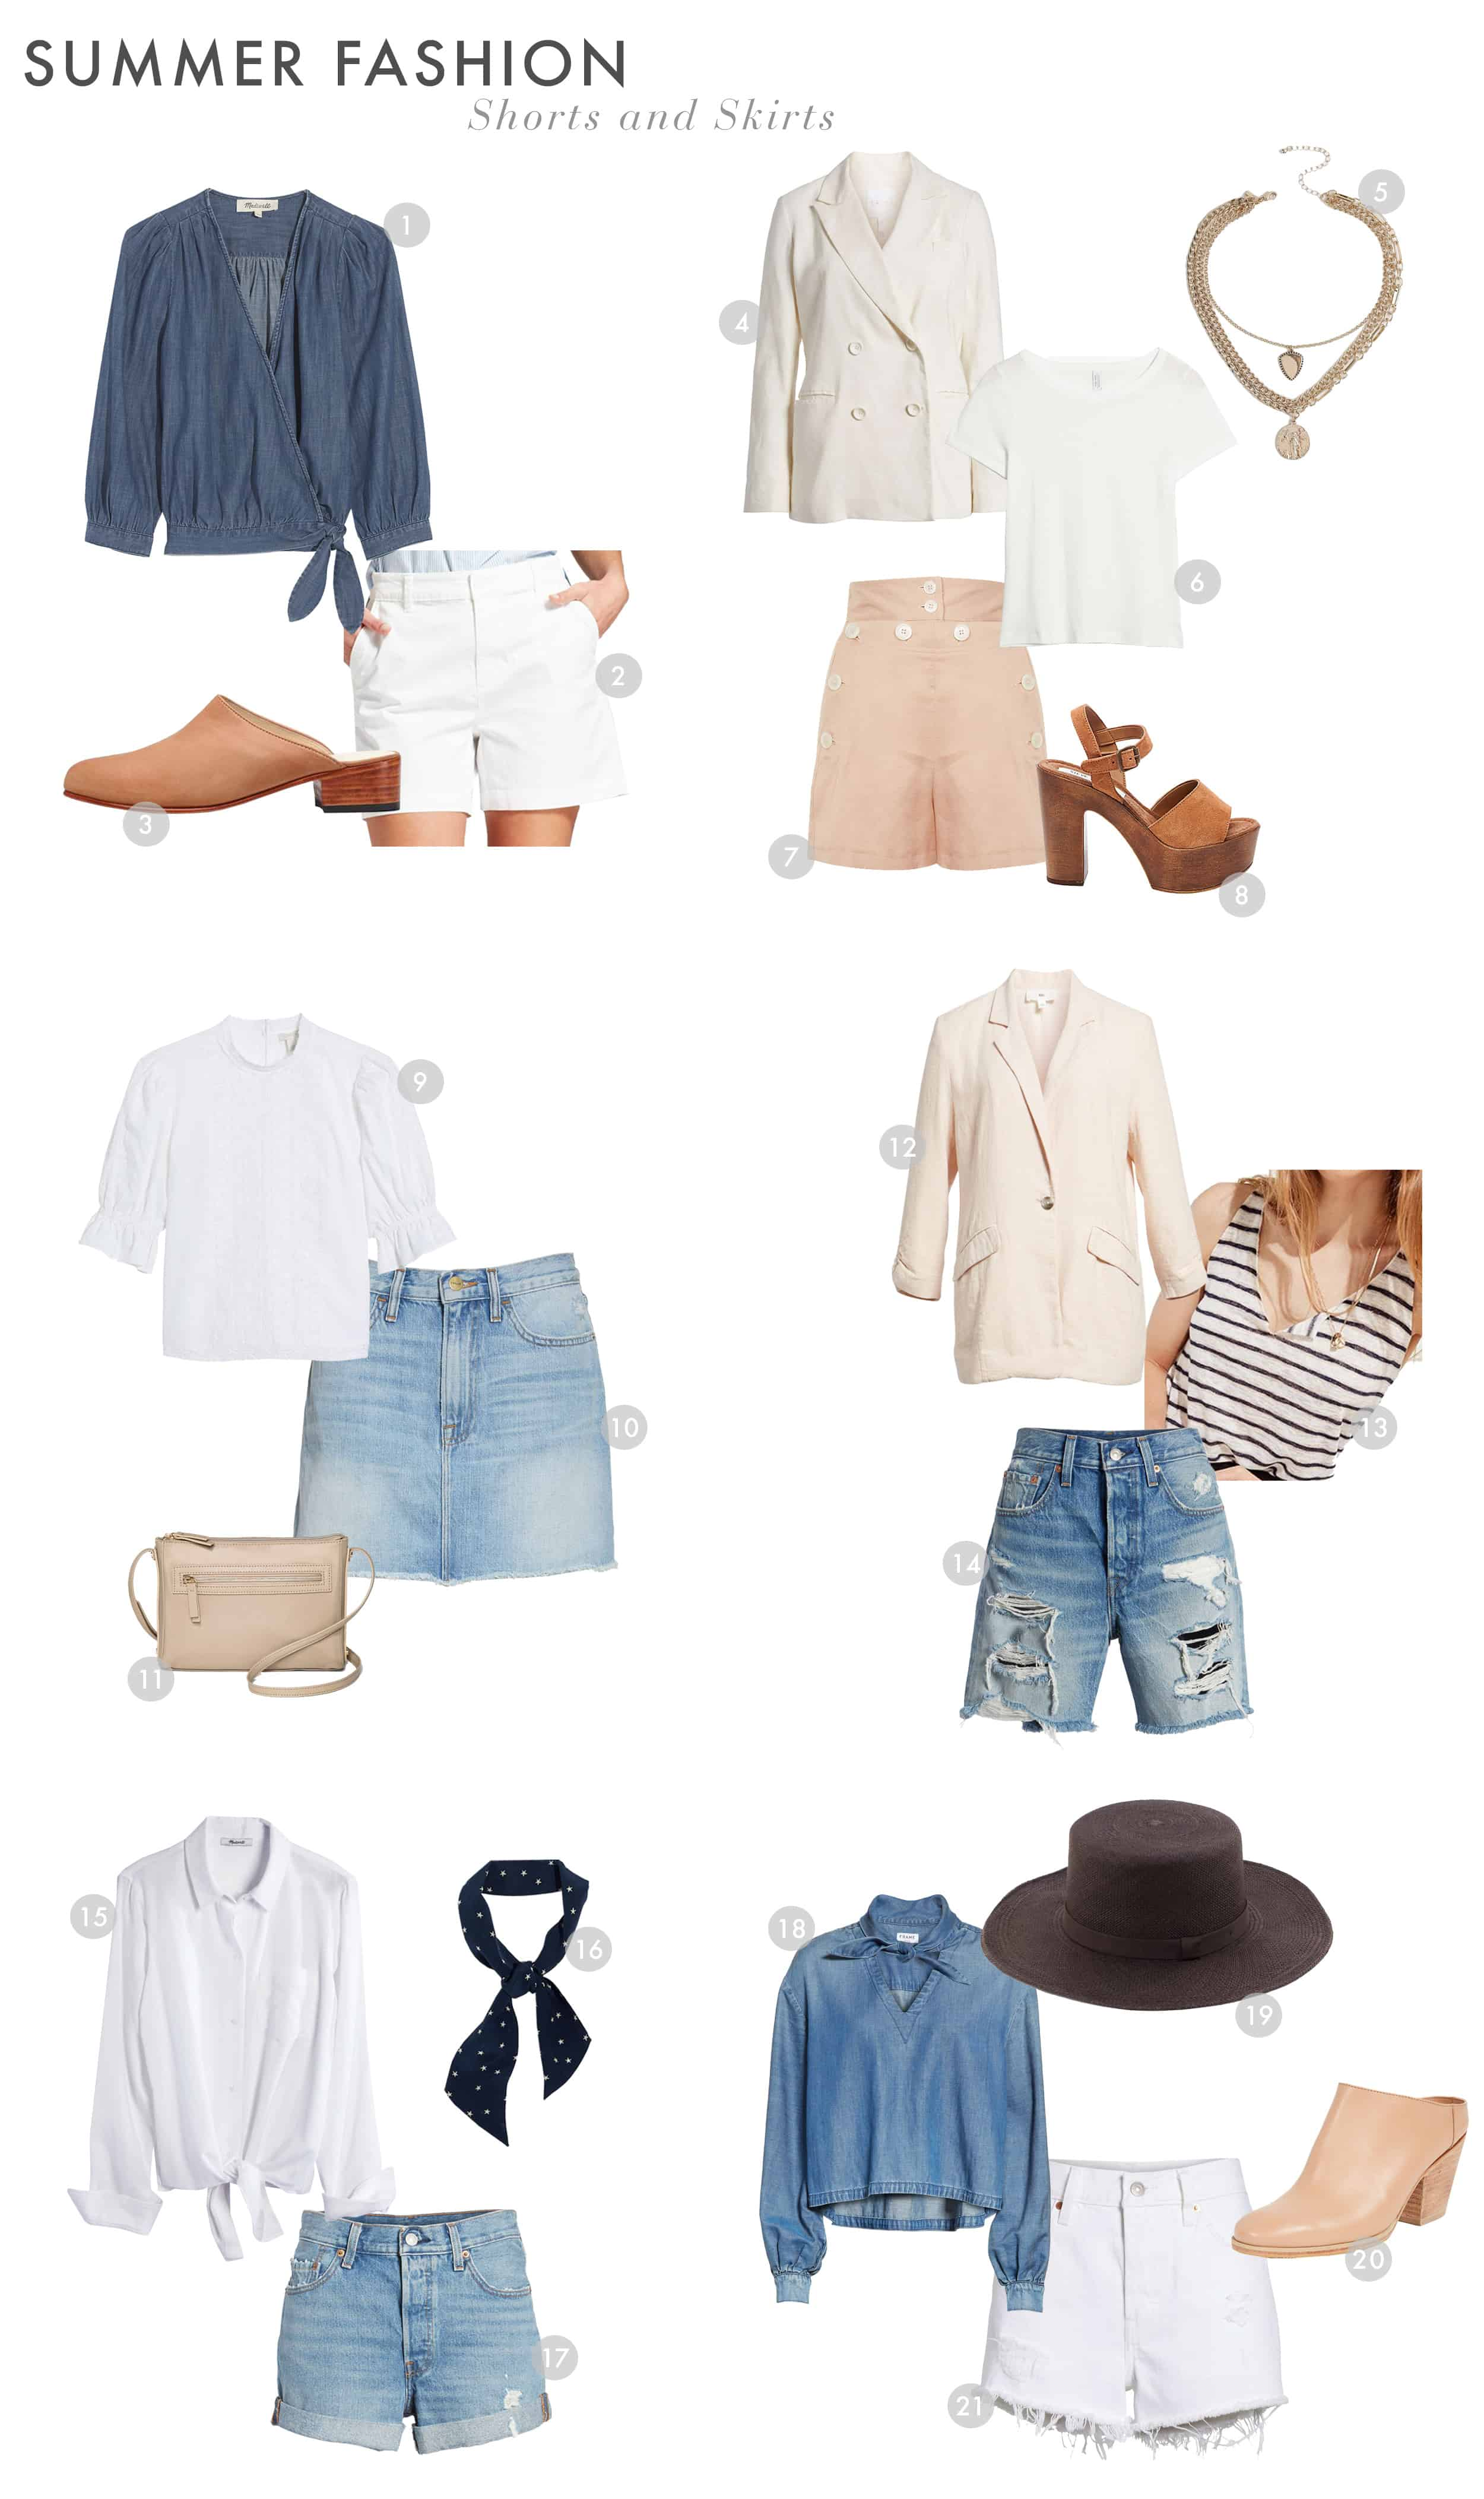 Emily Henderson Summer Fashion 2018 Shorts And Skirts 1